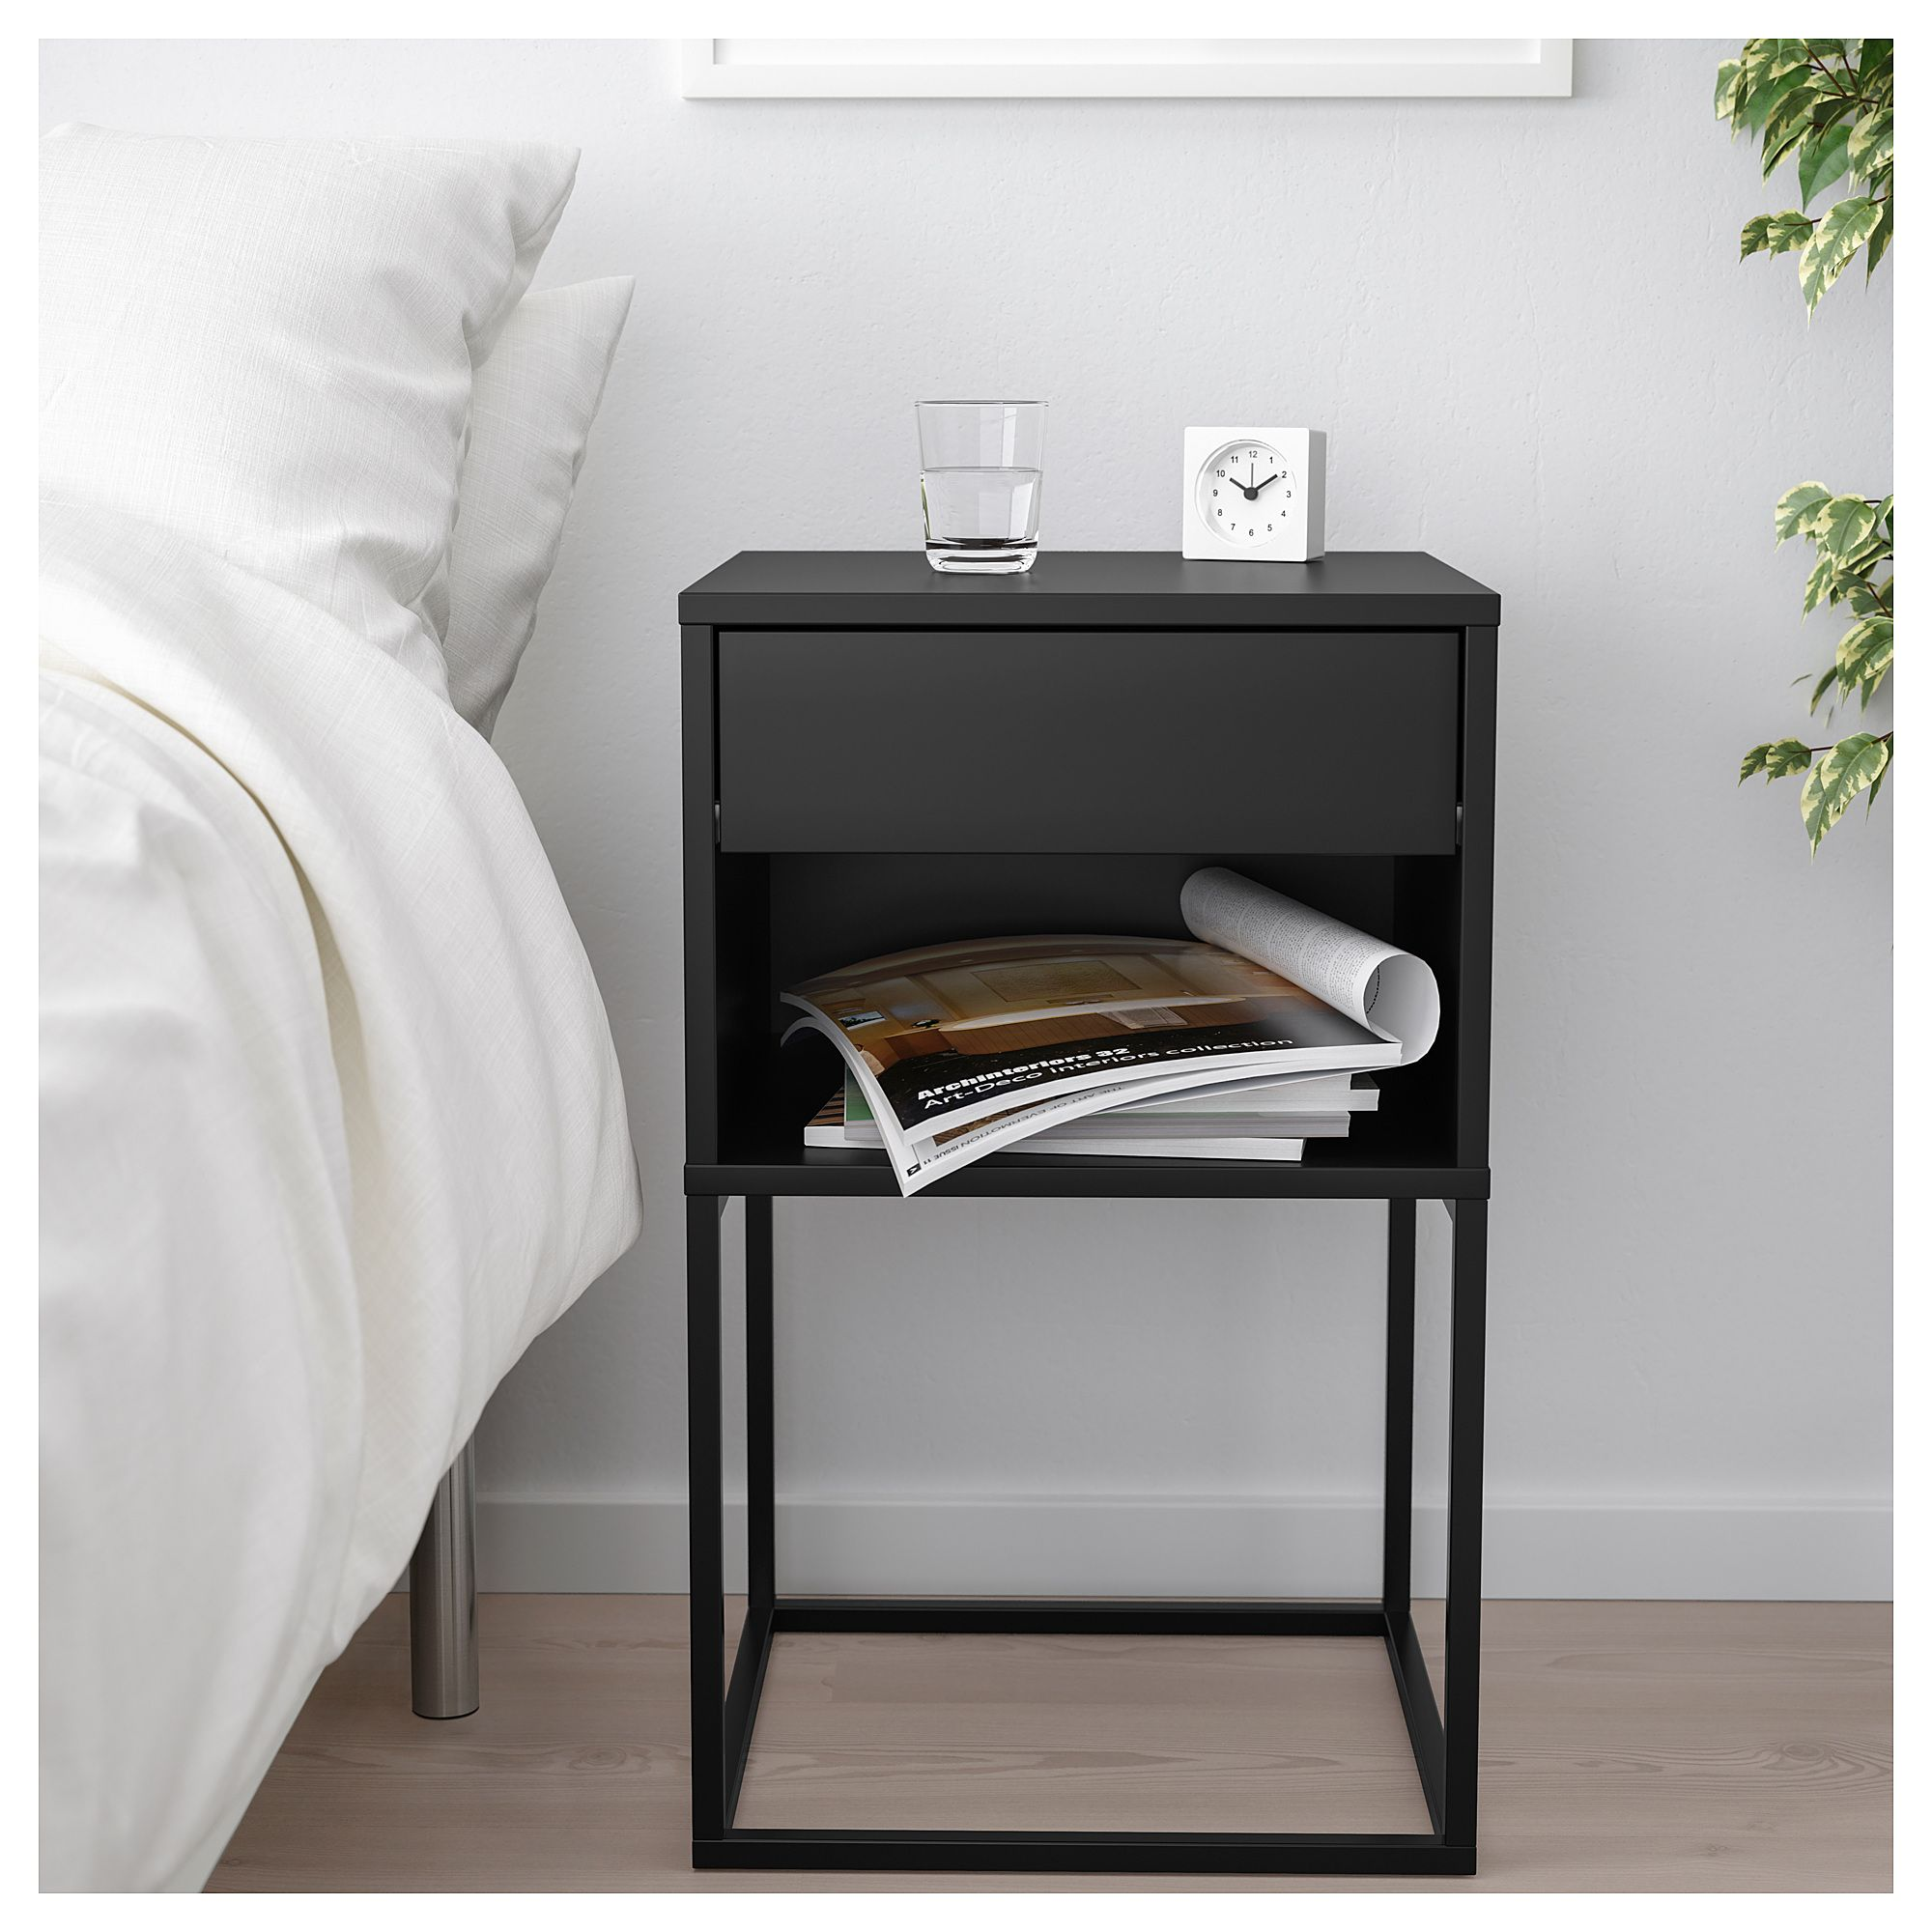 Table De Chevet Noir Ikea Vikhammer Bedside Table Black Ikea In 2019 Master Bedroom